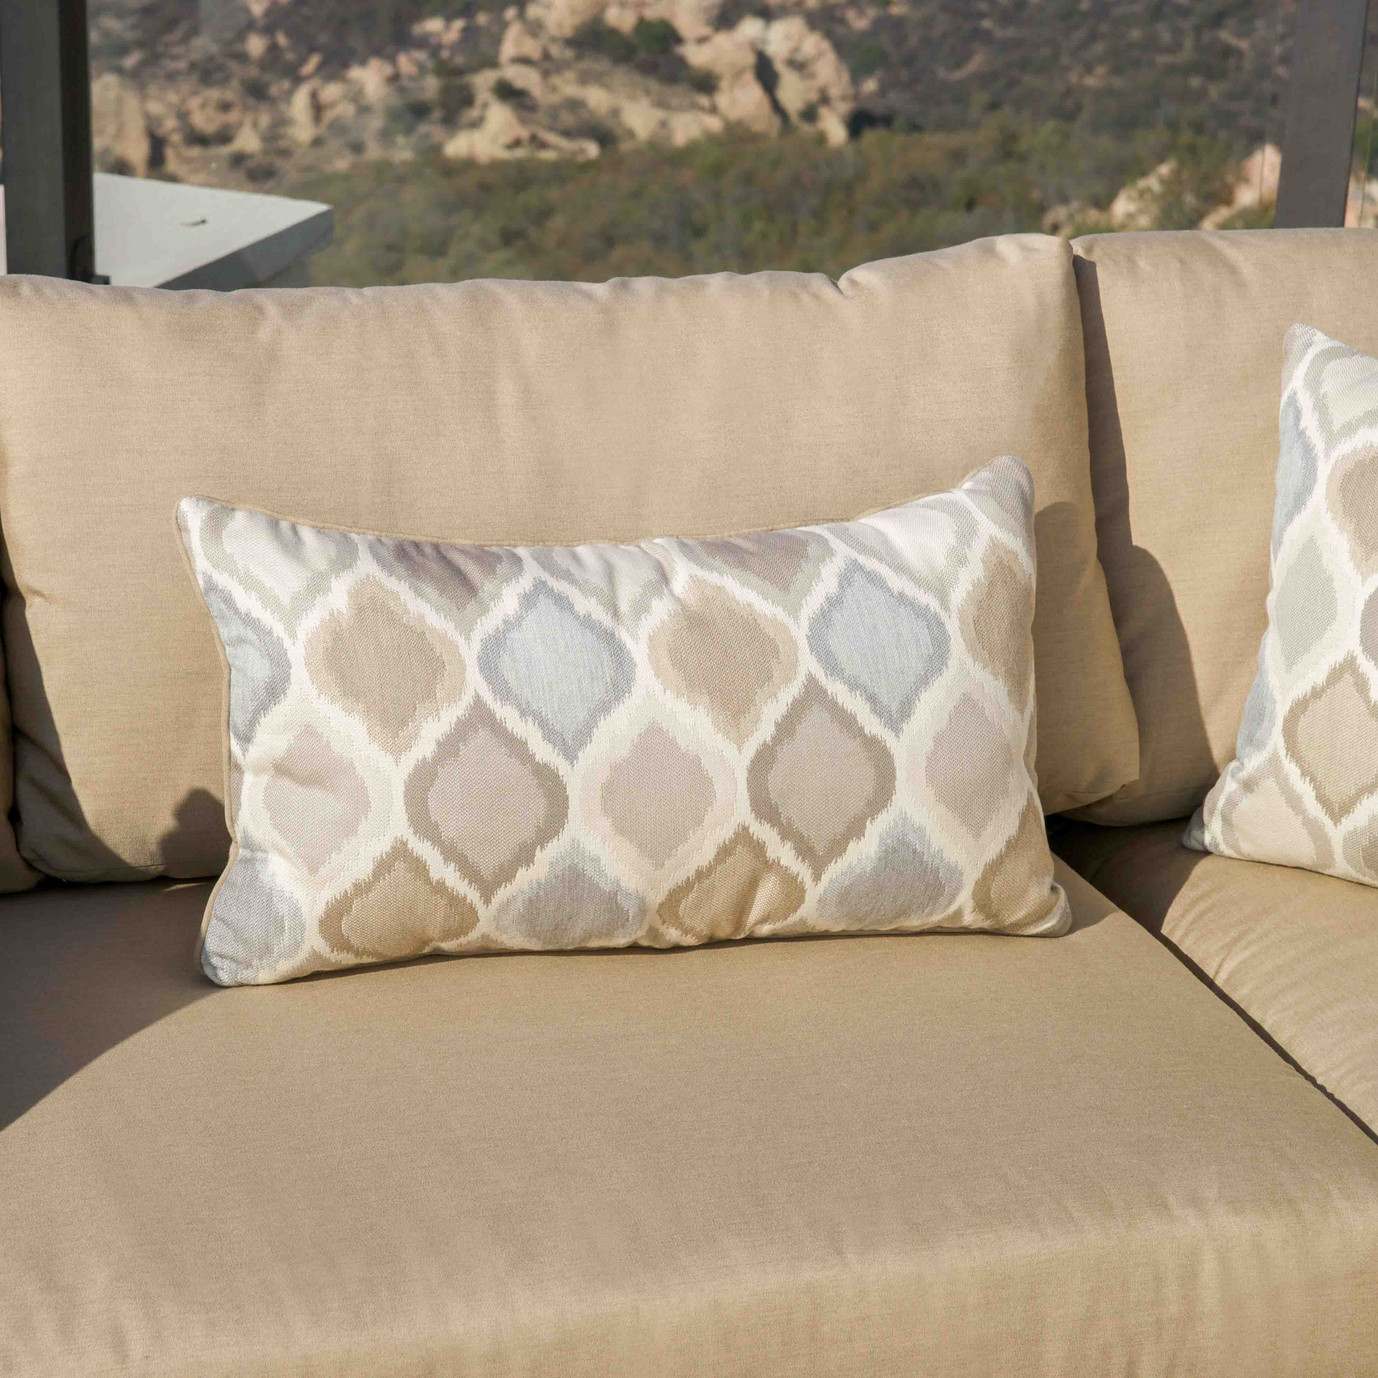 Portofino™ Comfort Moda 4pc Sectional - Heather Beige